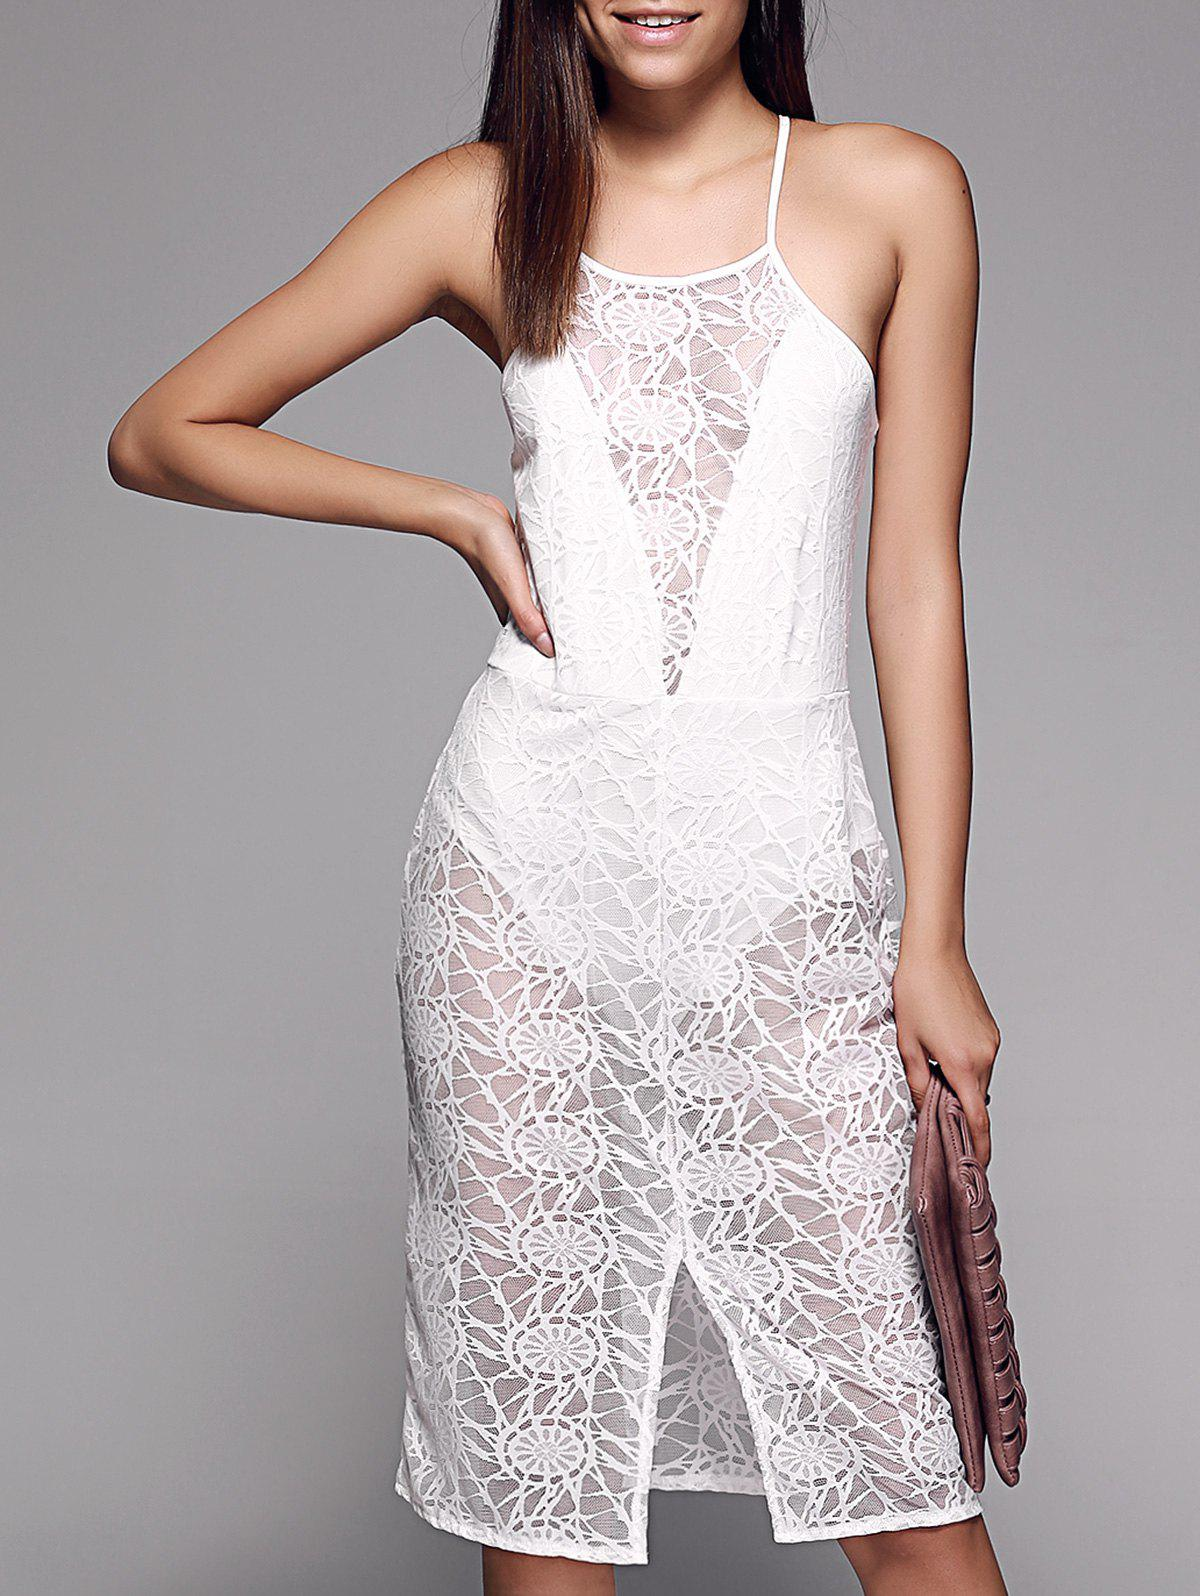 Alluring See-Through Slit Front Lace Women's Cami Dress